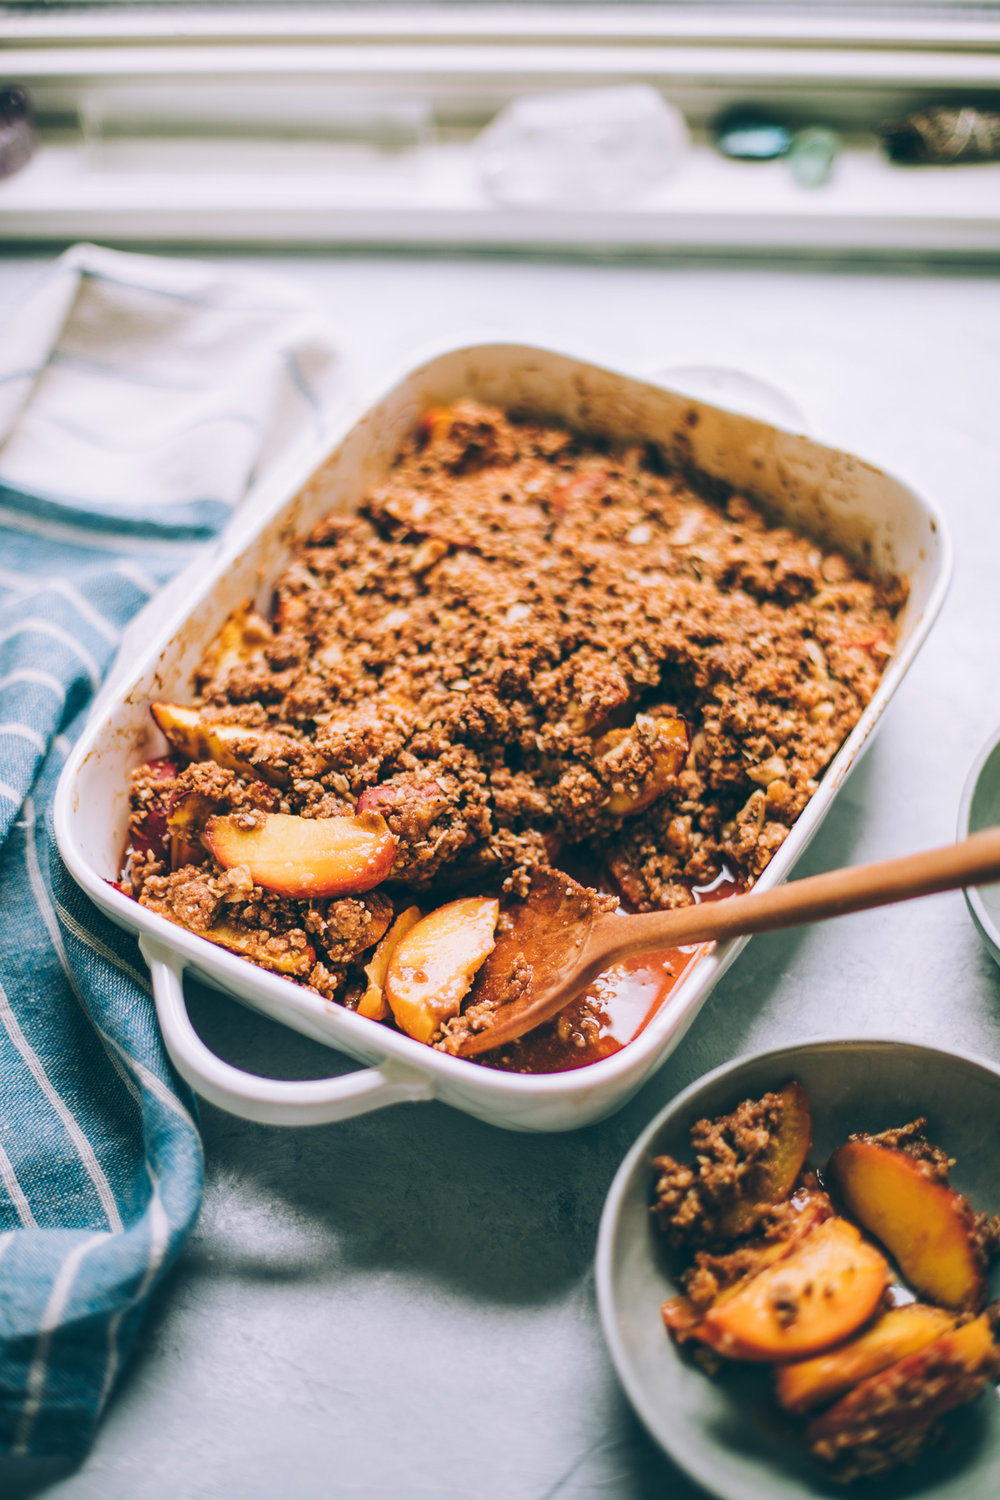 vegan peach crumble with walnut oat crumble, southern style | coconut oil crumble | vegan crisp recipe | healthy fruit crumble recipe | southern peach crisp